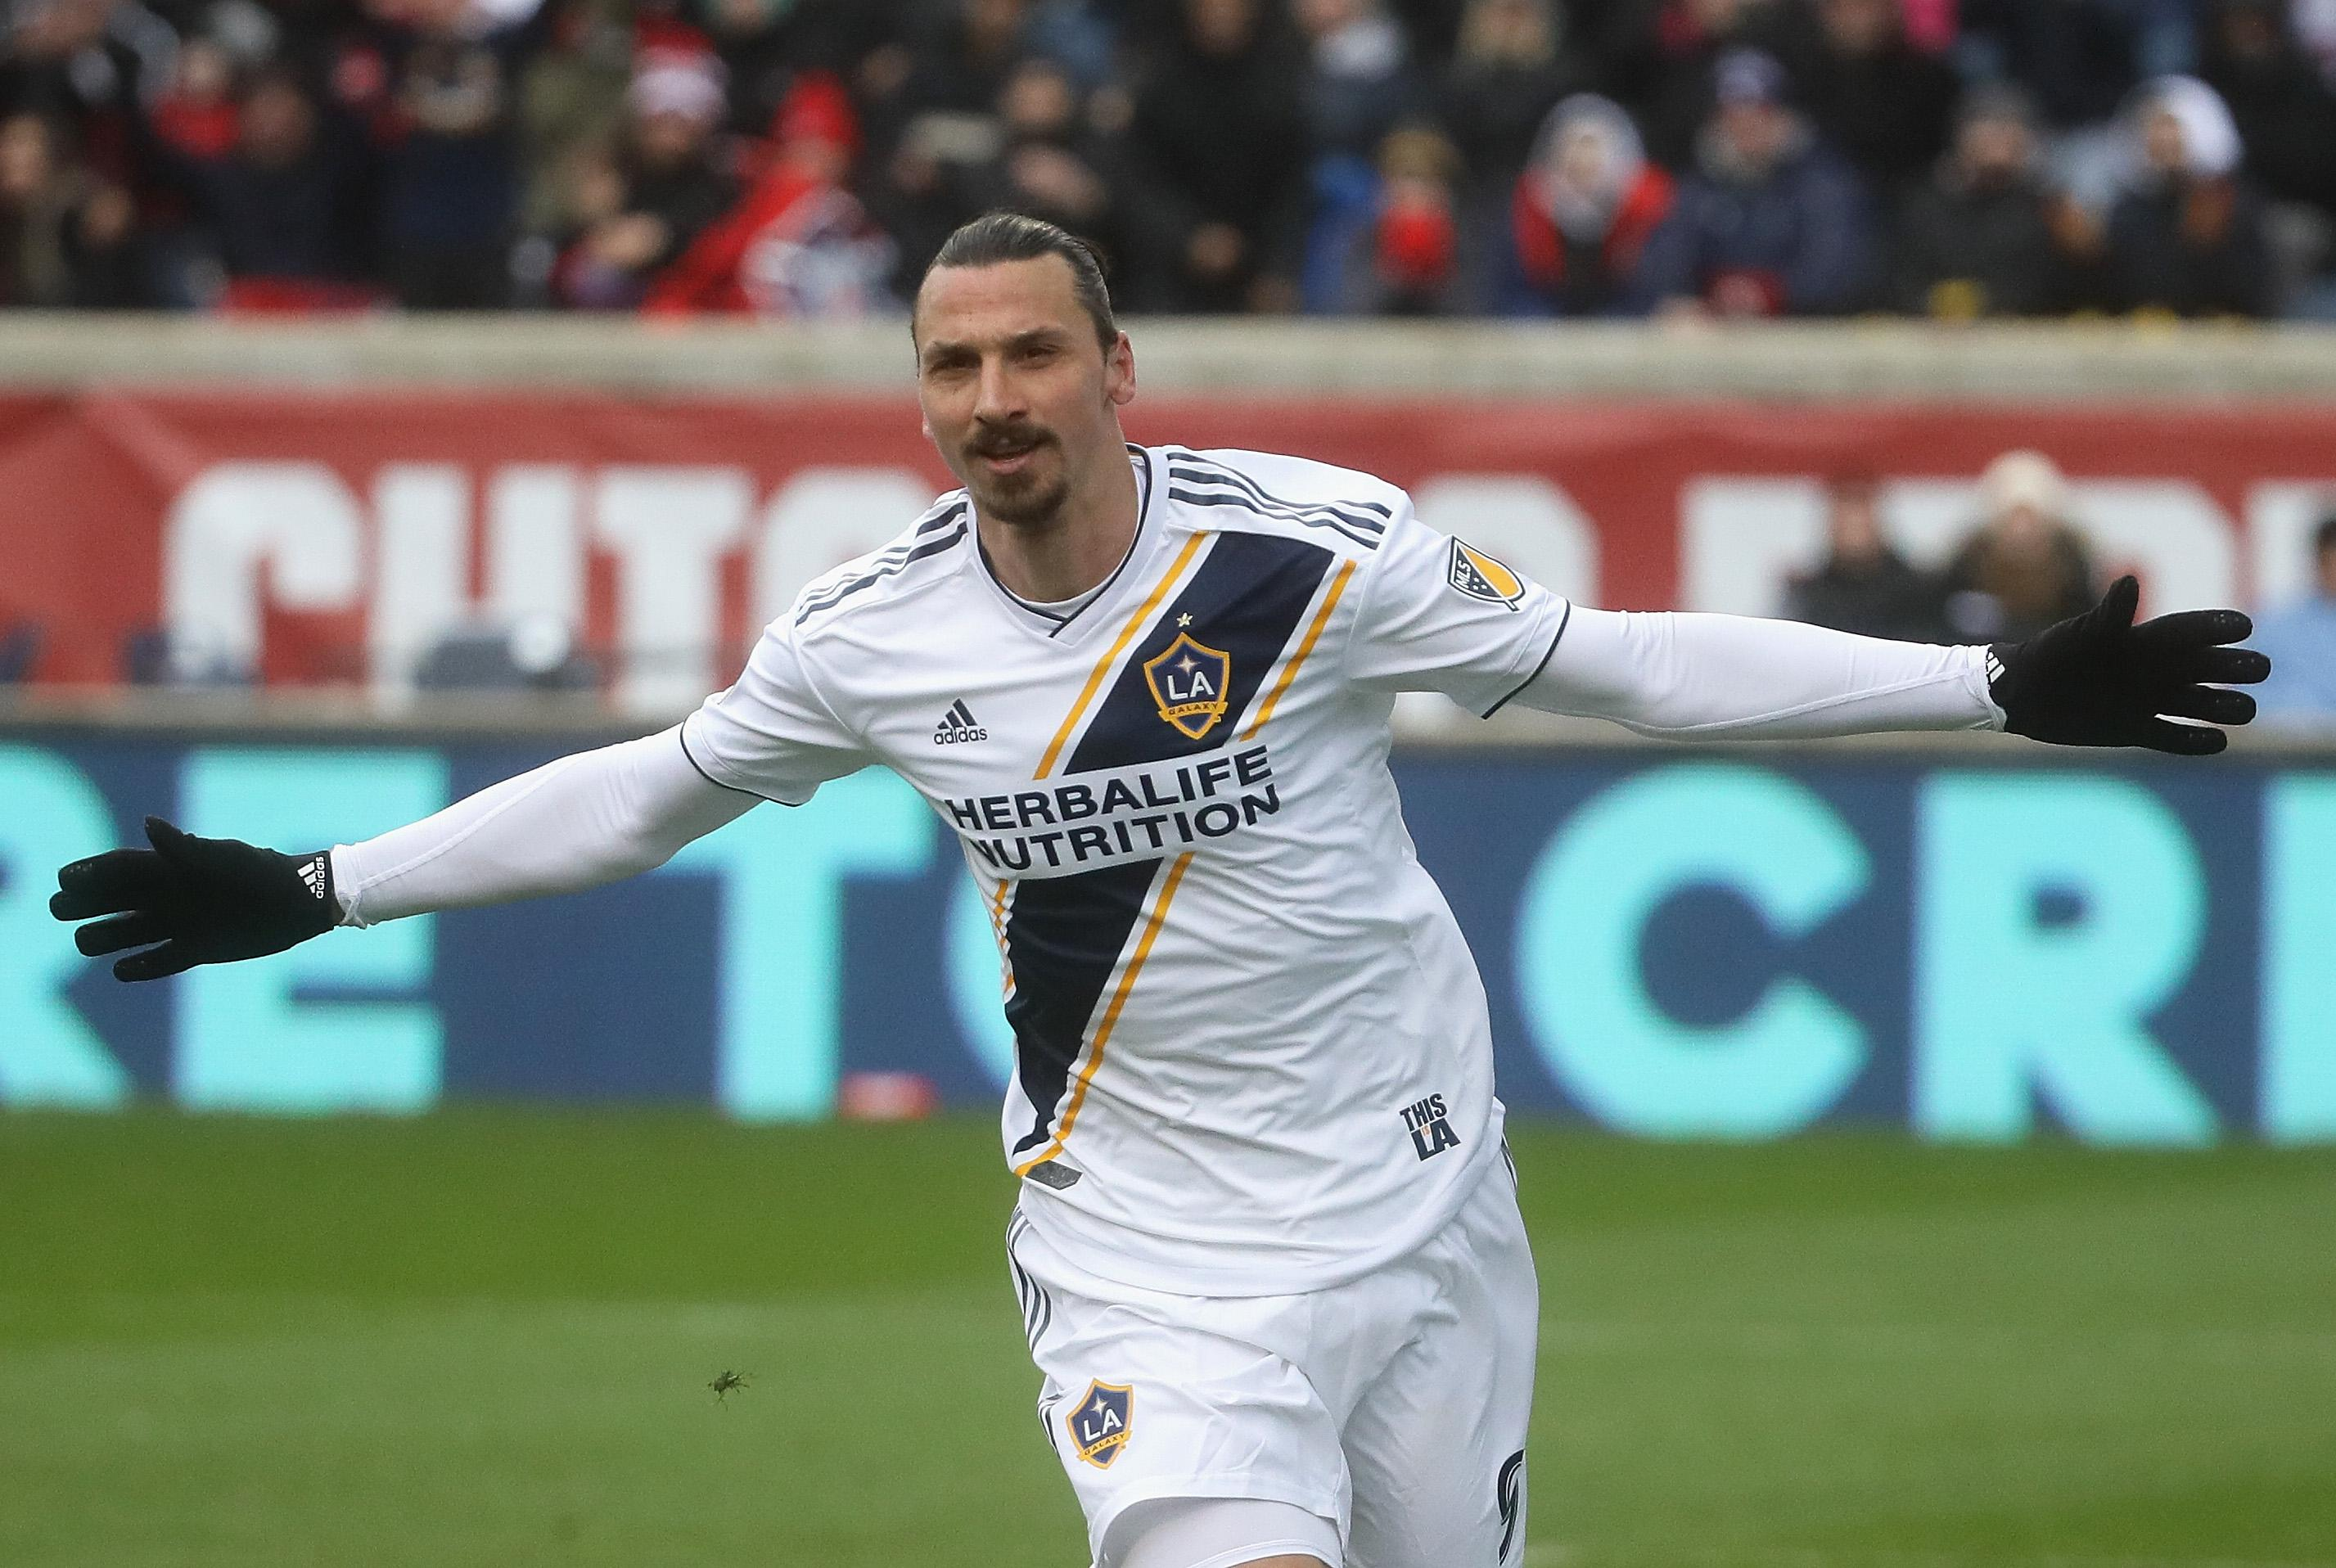 Zlatan Ibrahimovic facing World Cup ban over links with betting company